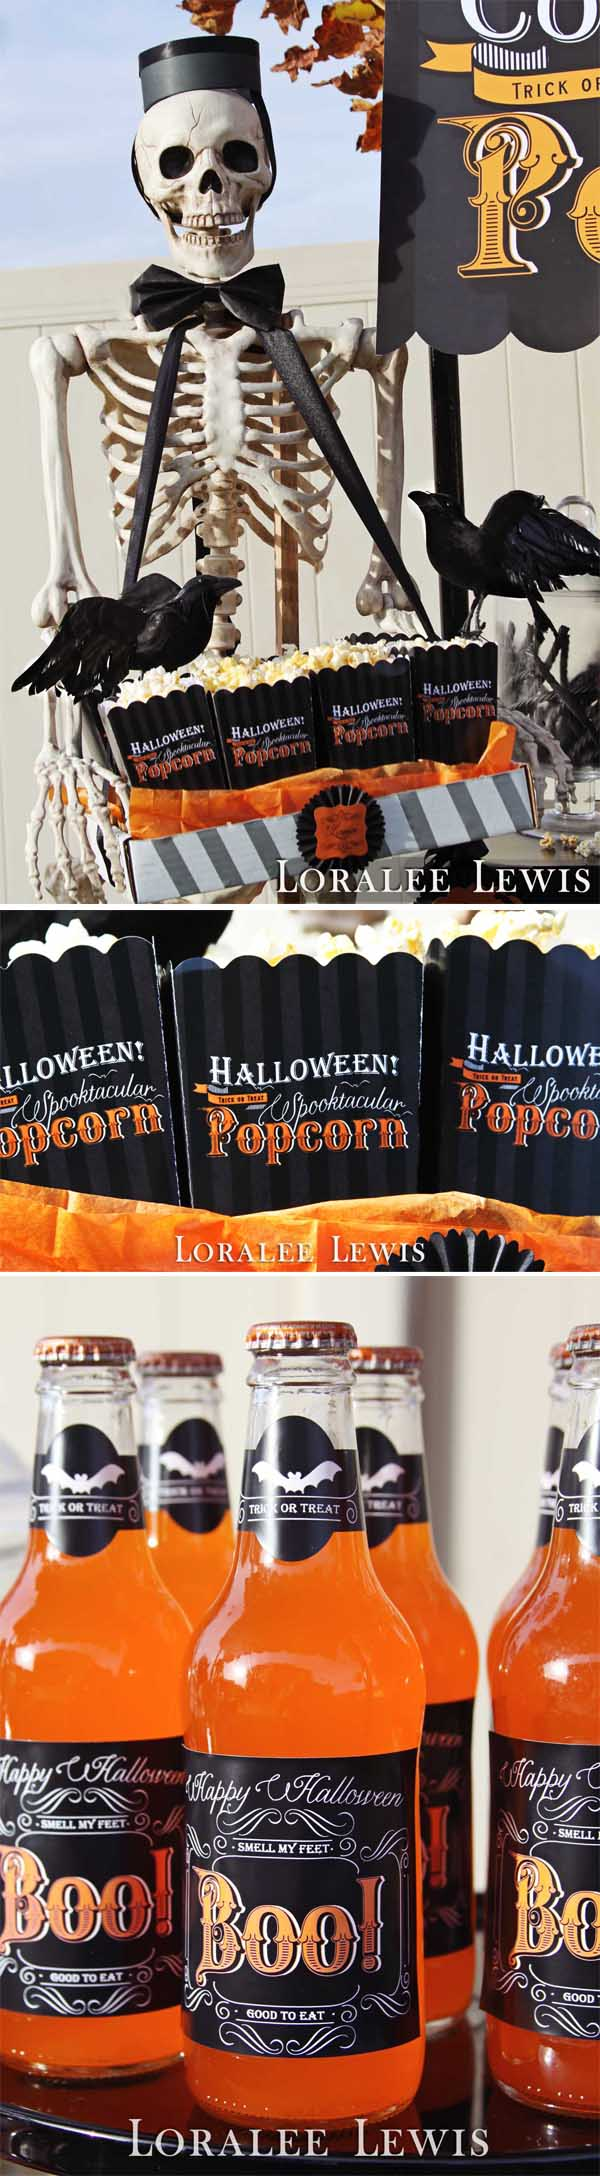 Let's Go to the Movies! A Halloween Drive-In Party! – Loralee Lewis